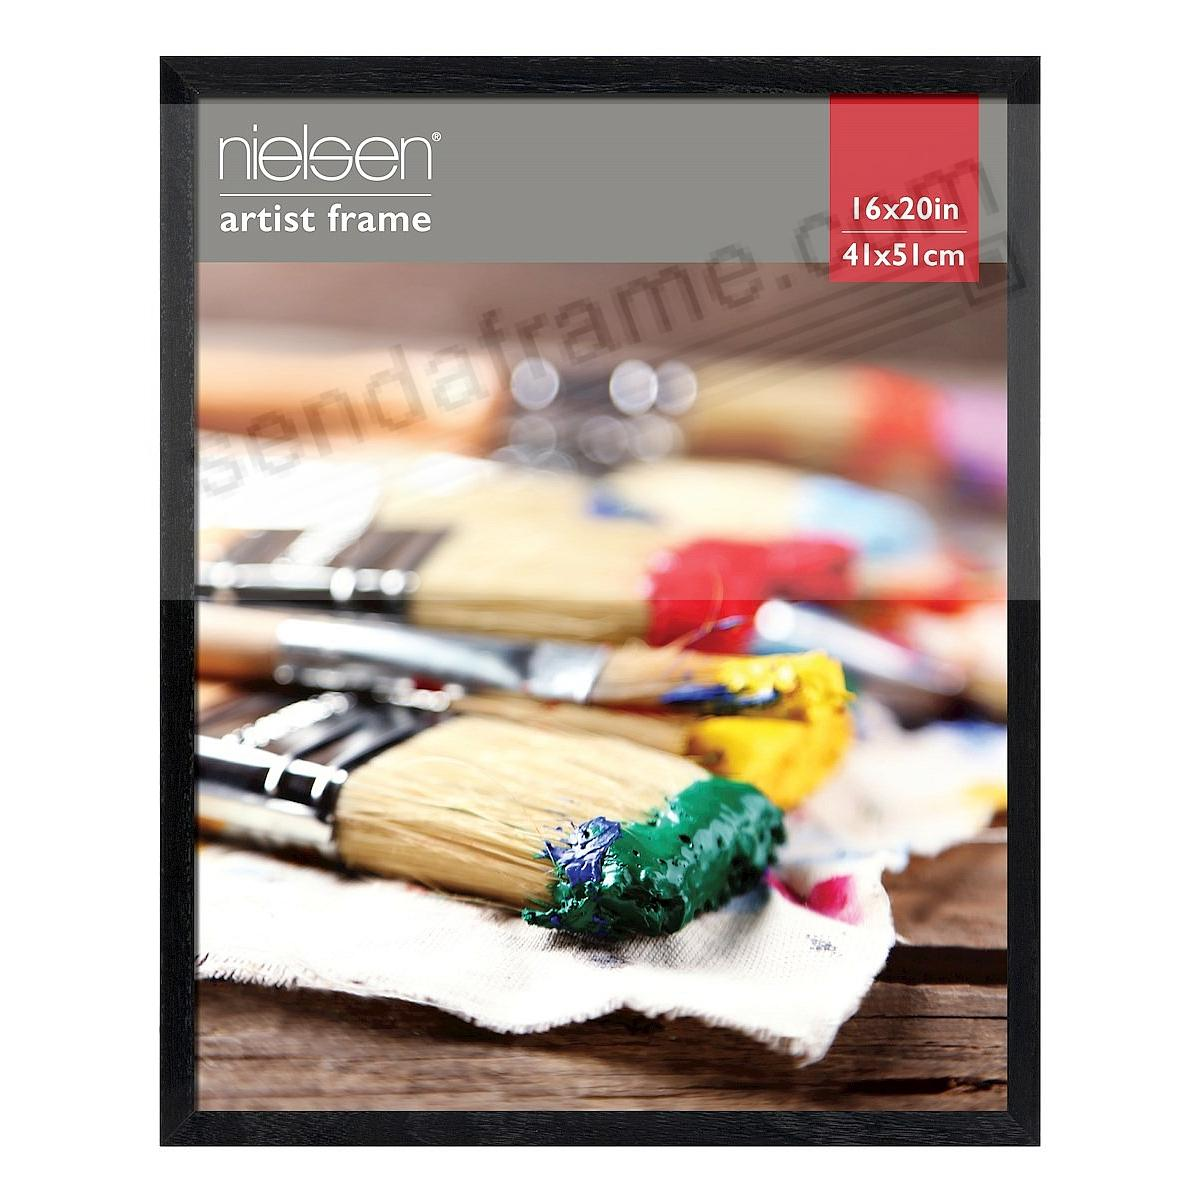 Black ROYAL fine wood 16x20 poster frame by Nielsen®